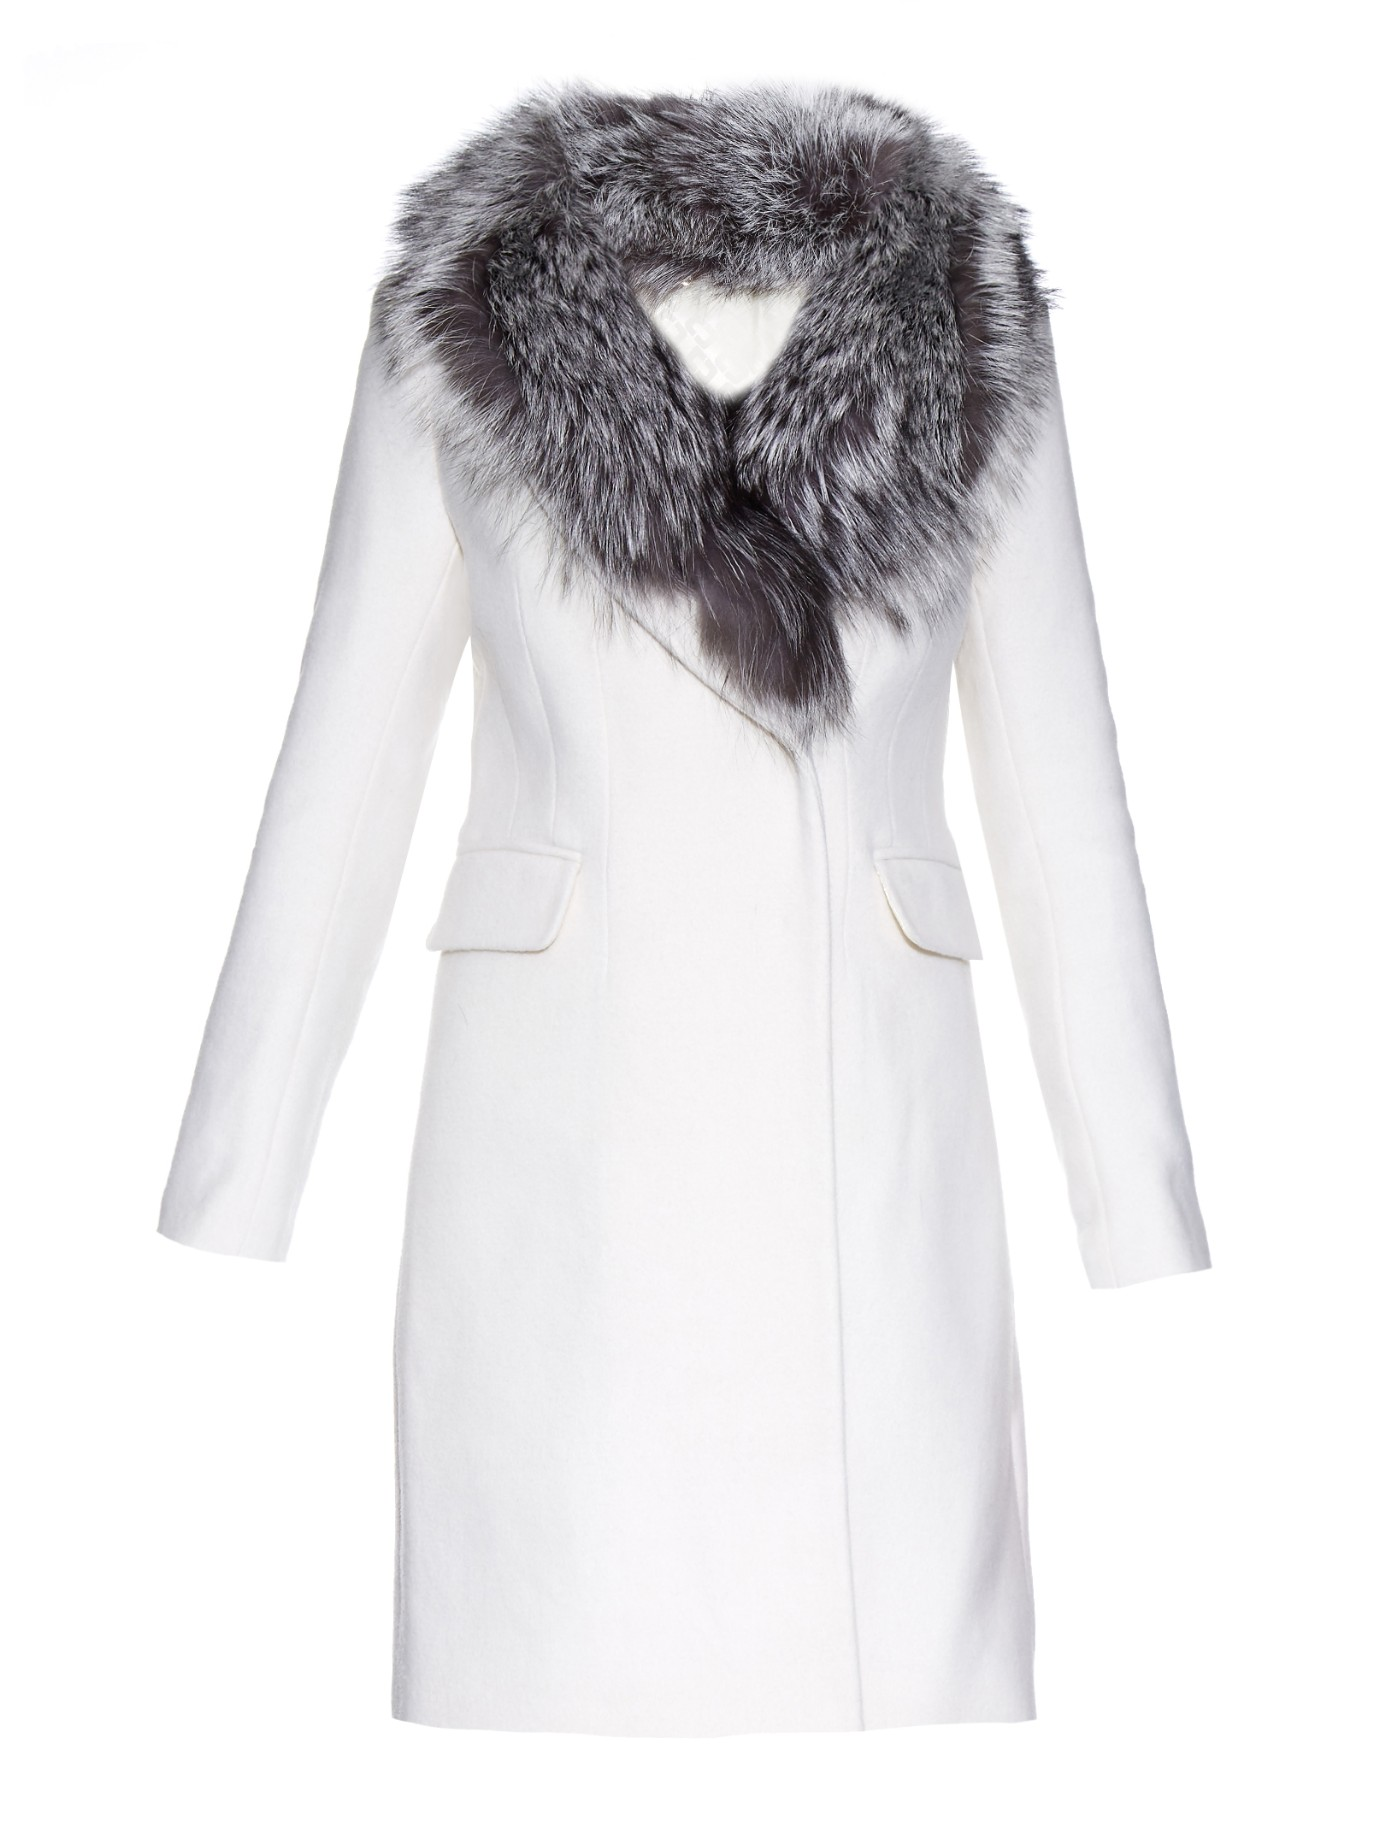 winter-2016-latest-top-jacket-trends-fur-wool-white